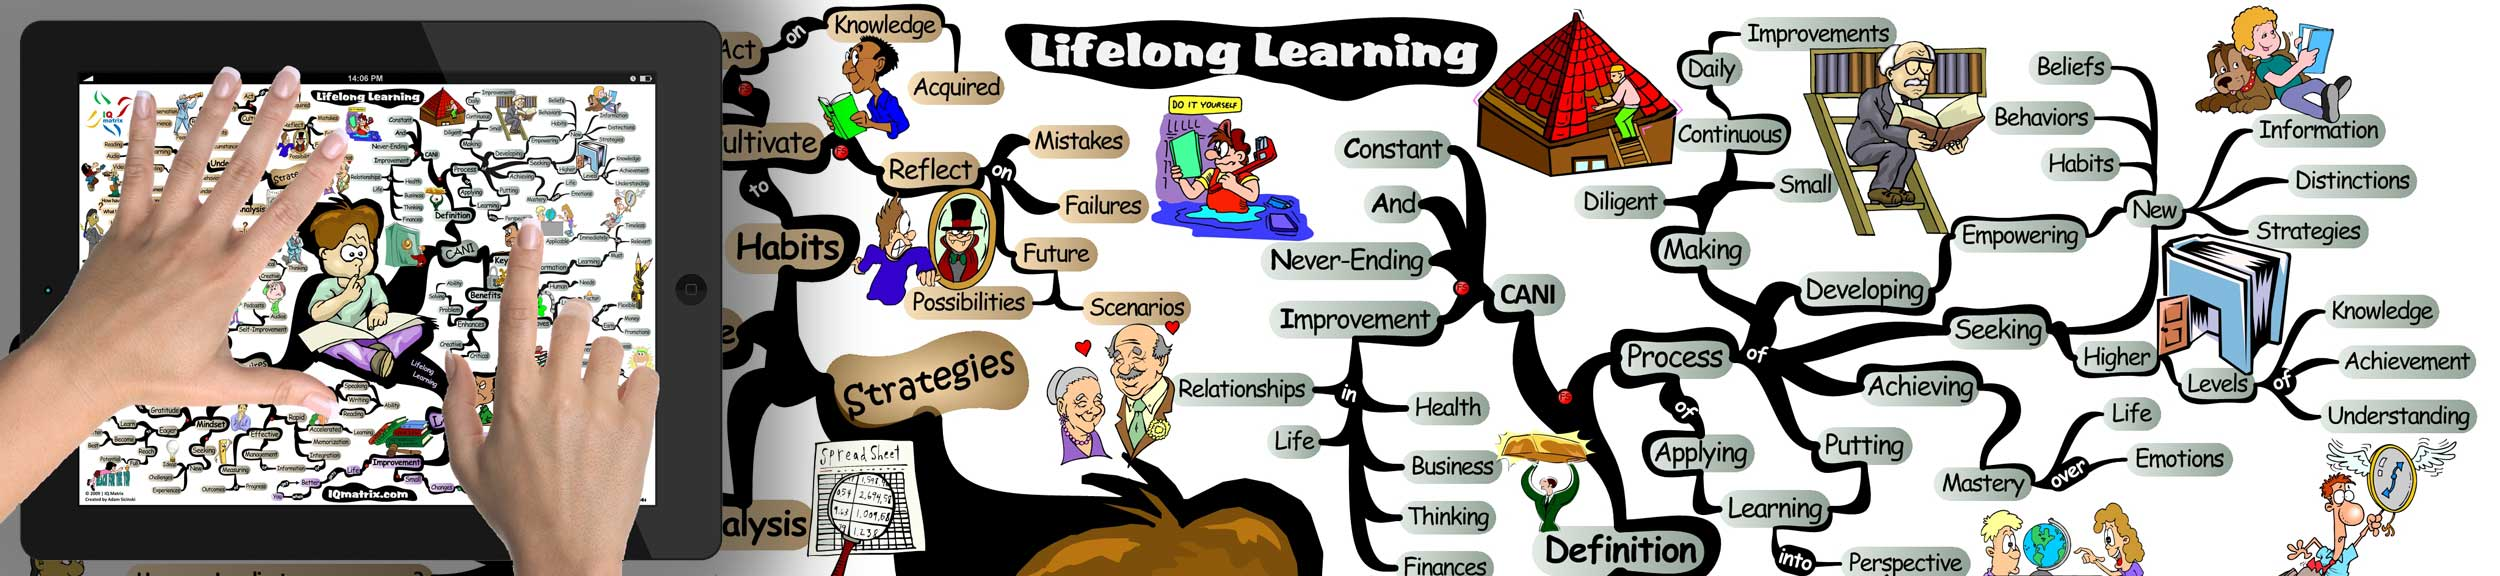 importance of lifelong learning and brain stimulation to longevity and quality of life O discuss the importance of lifelong learning and brain stimulation to longevity and quality of life • include at least four references in your paper from scholarly, peer-reviewed sources • format your paper consistent with apa guidelines.